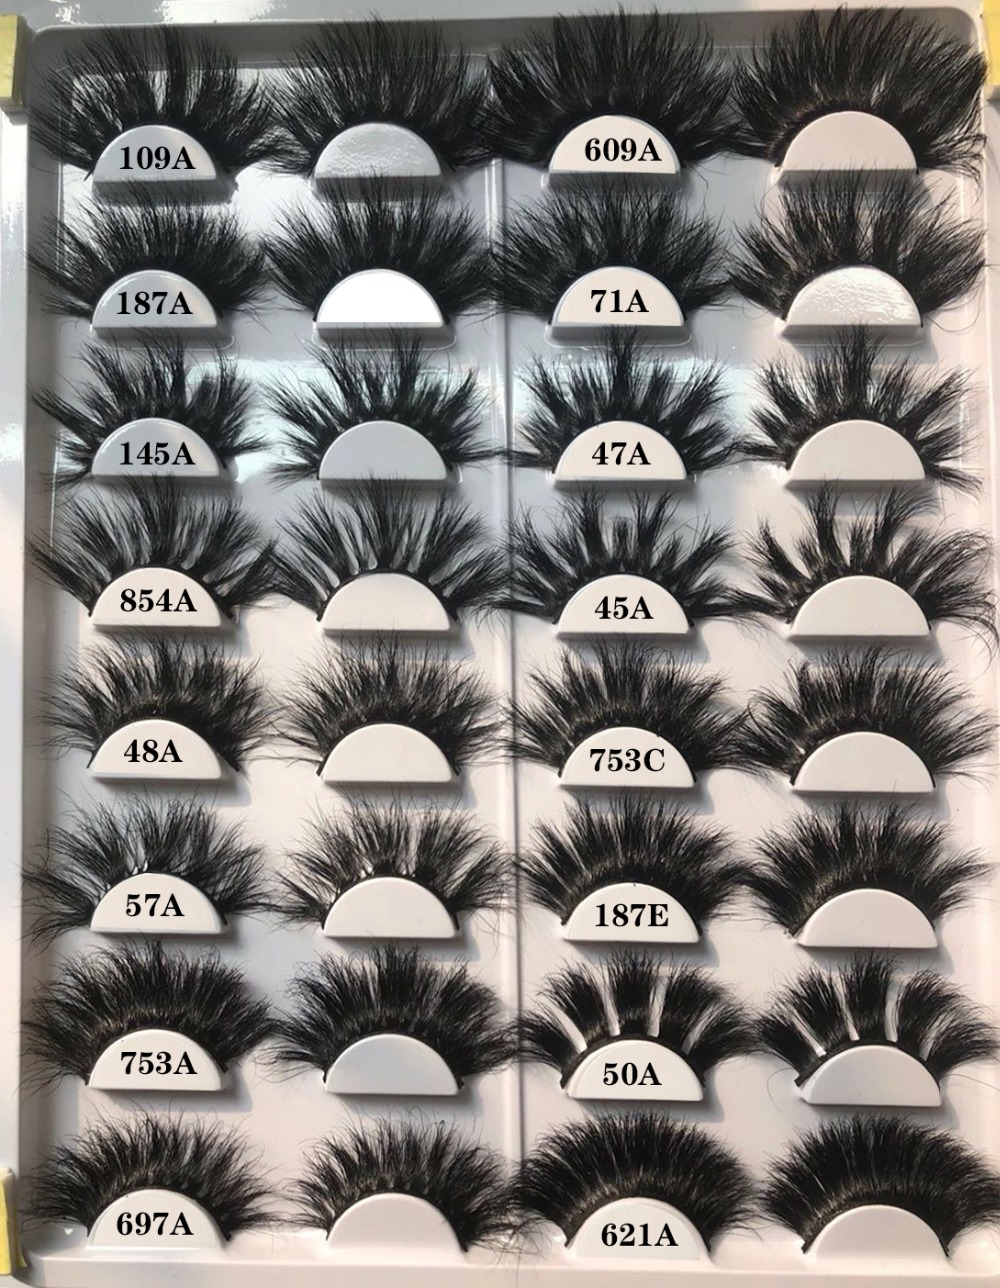 29 Styles 25mm Lashes Wholesale 100% Mink Hair Crisscross Thick Natural 3d Eyelashes Handmade Mink Lashes Makeup Fake Eyelashes